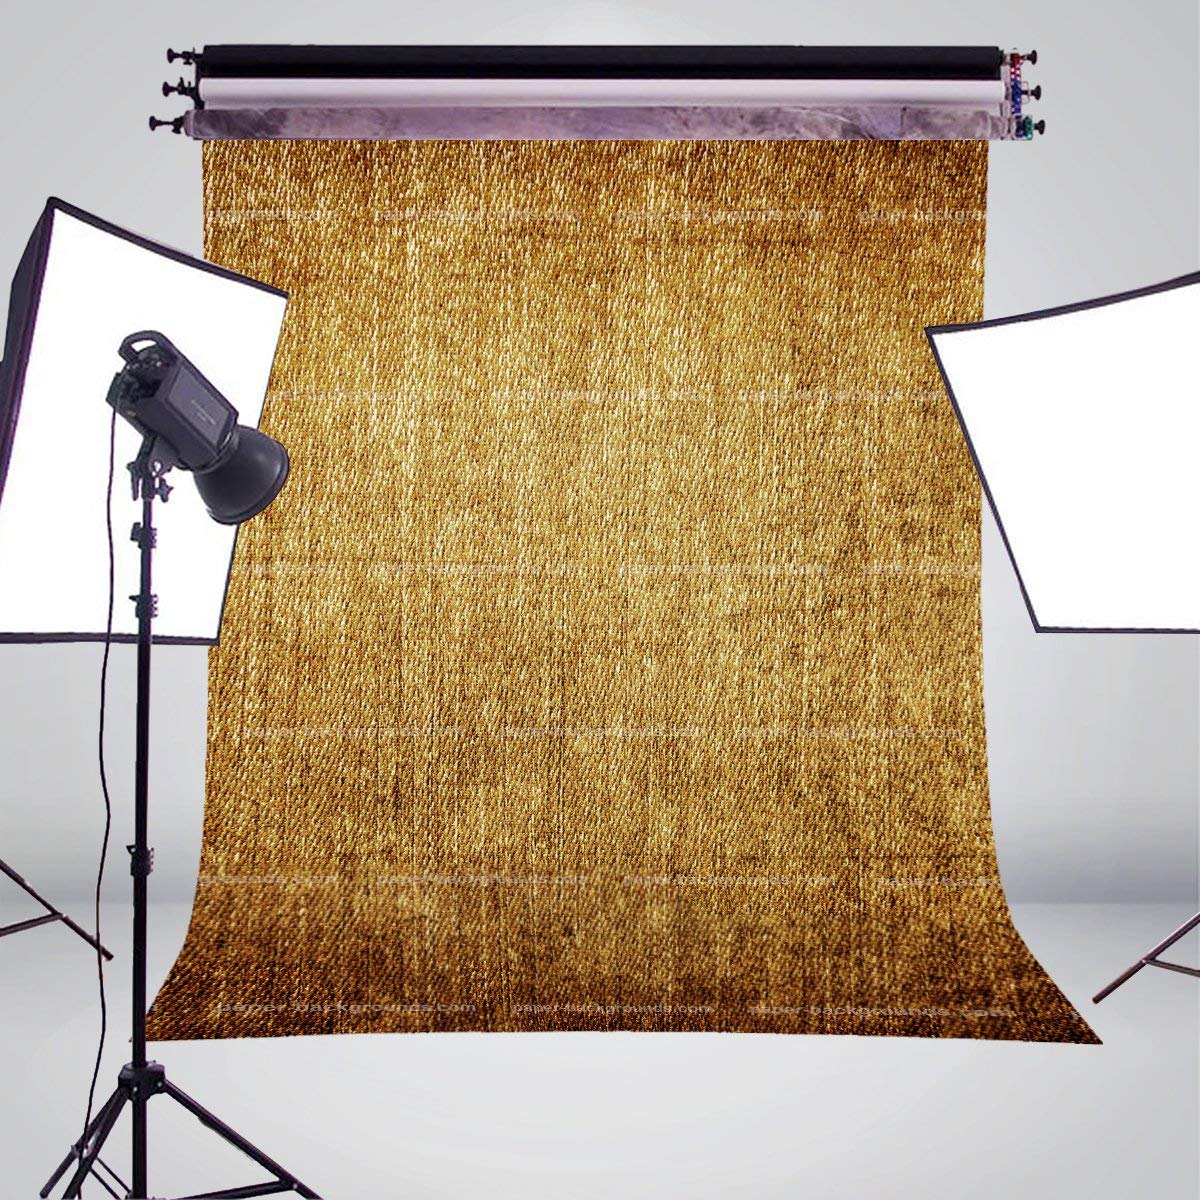 Canvas Texture Photography Backdrops Wooden Background Photo Studio Props Wall Photography Background 5x7ft in Photo Studio Accessories from Consumer Electronics